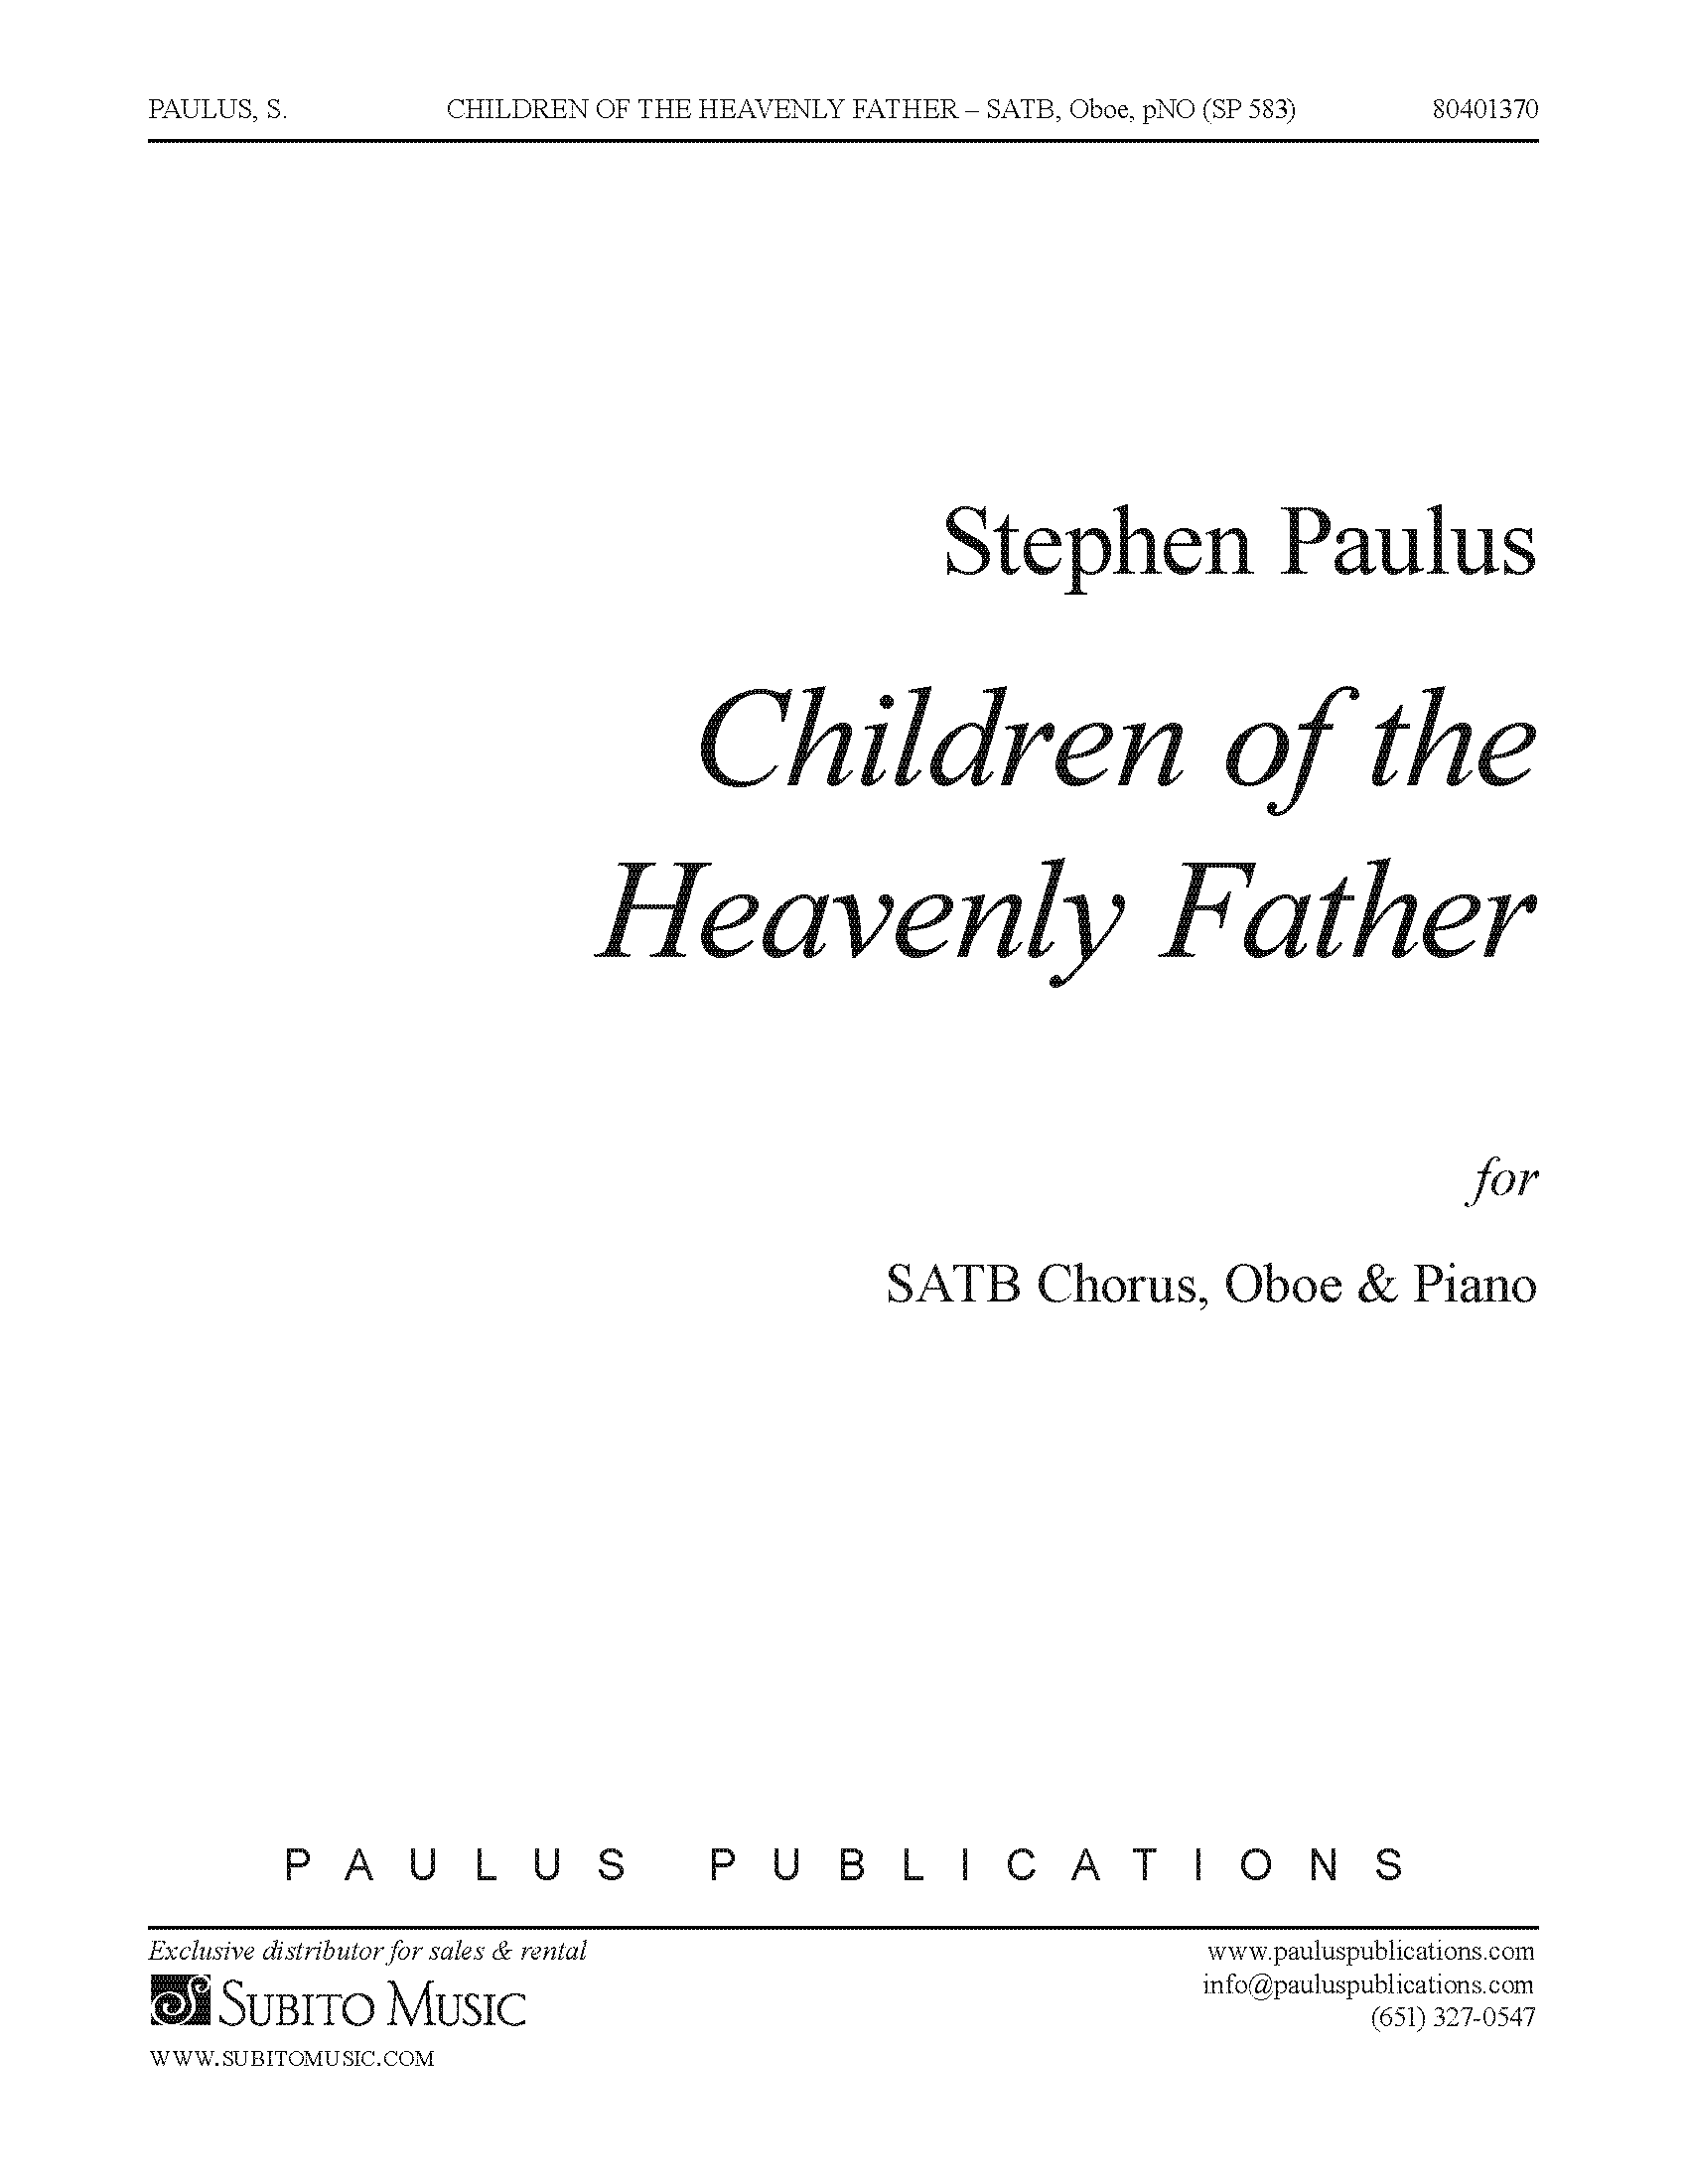 Children of the Heavenly Father for SATB Chorus, Oboe & Piano